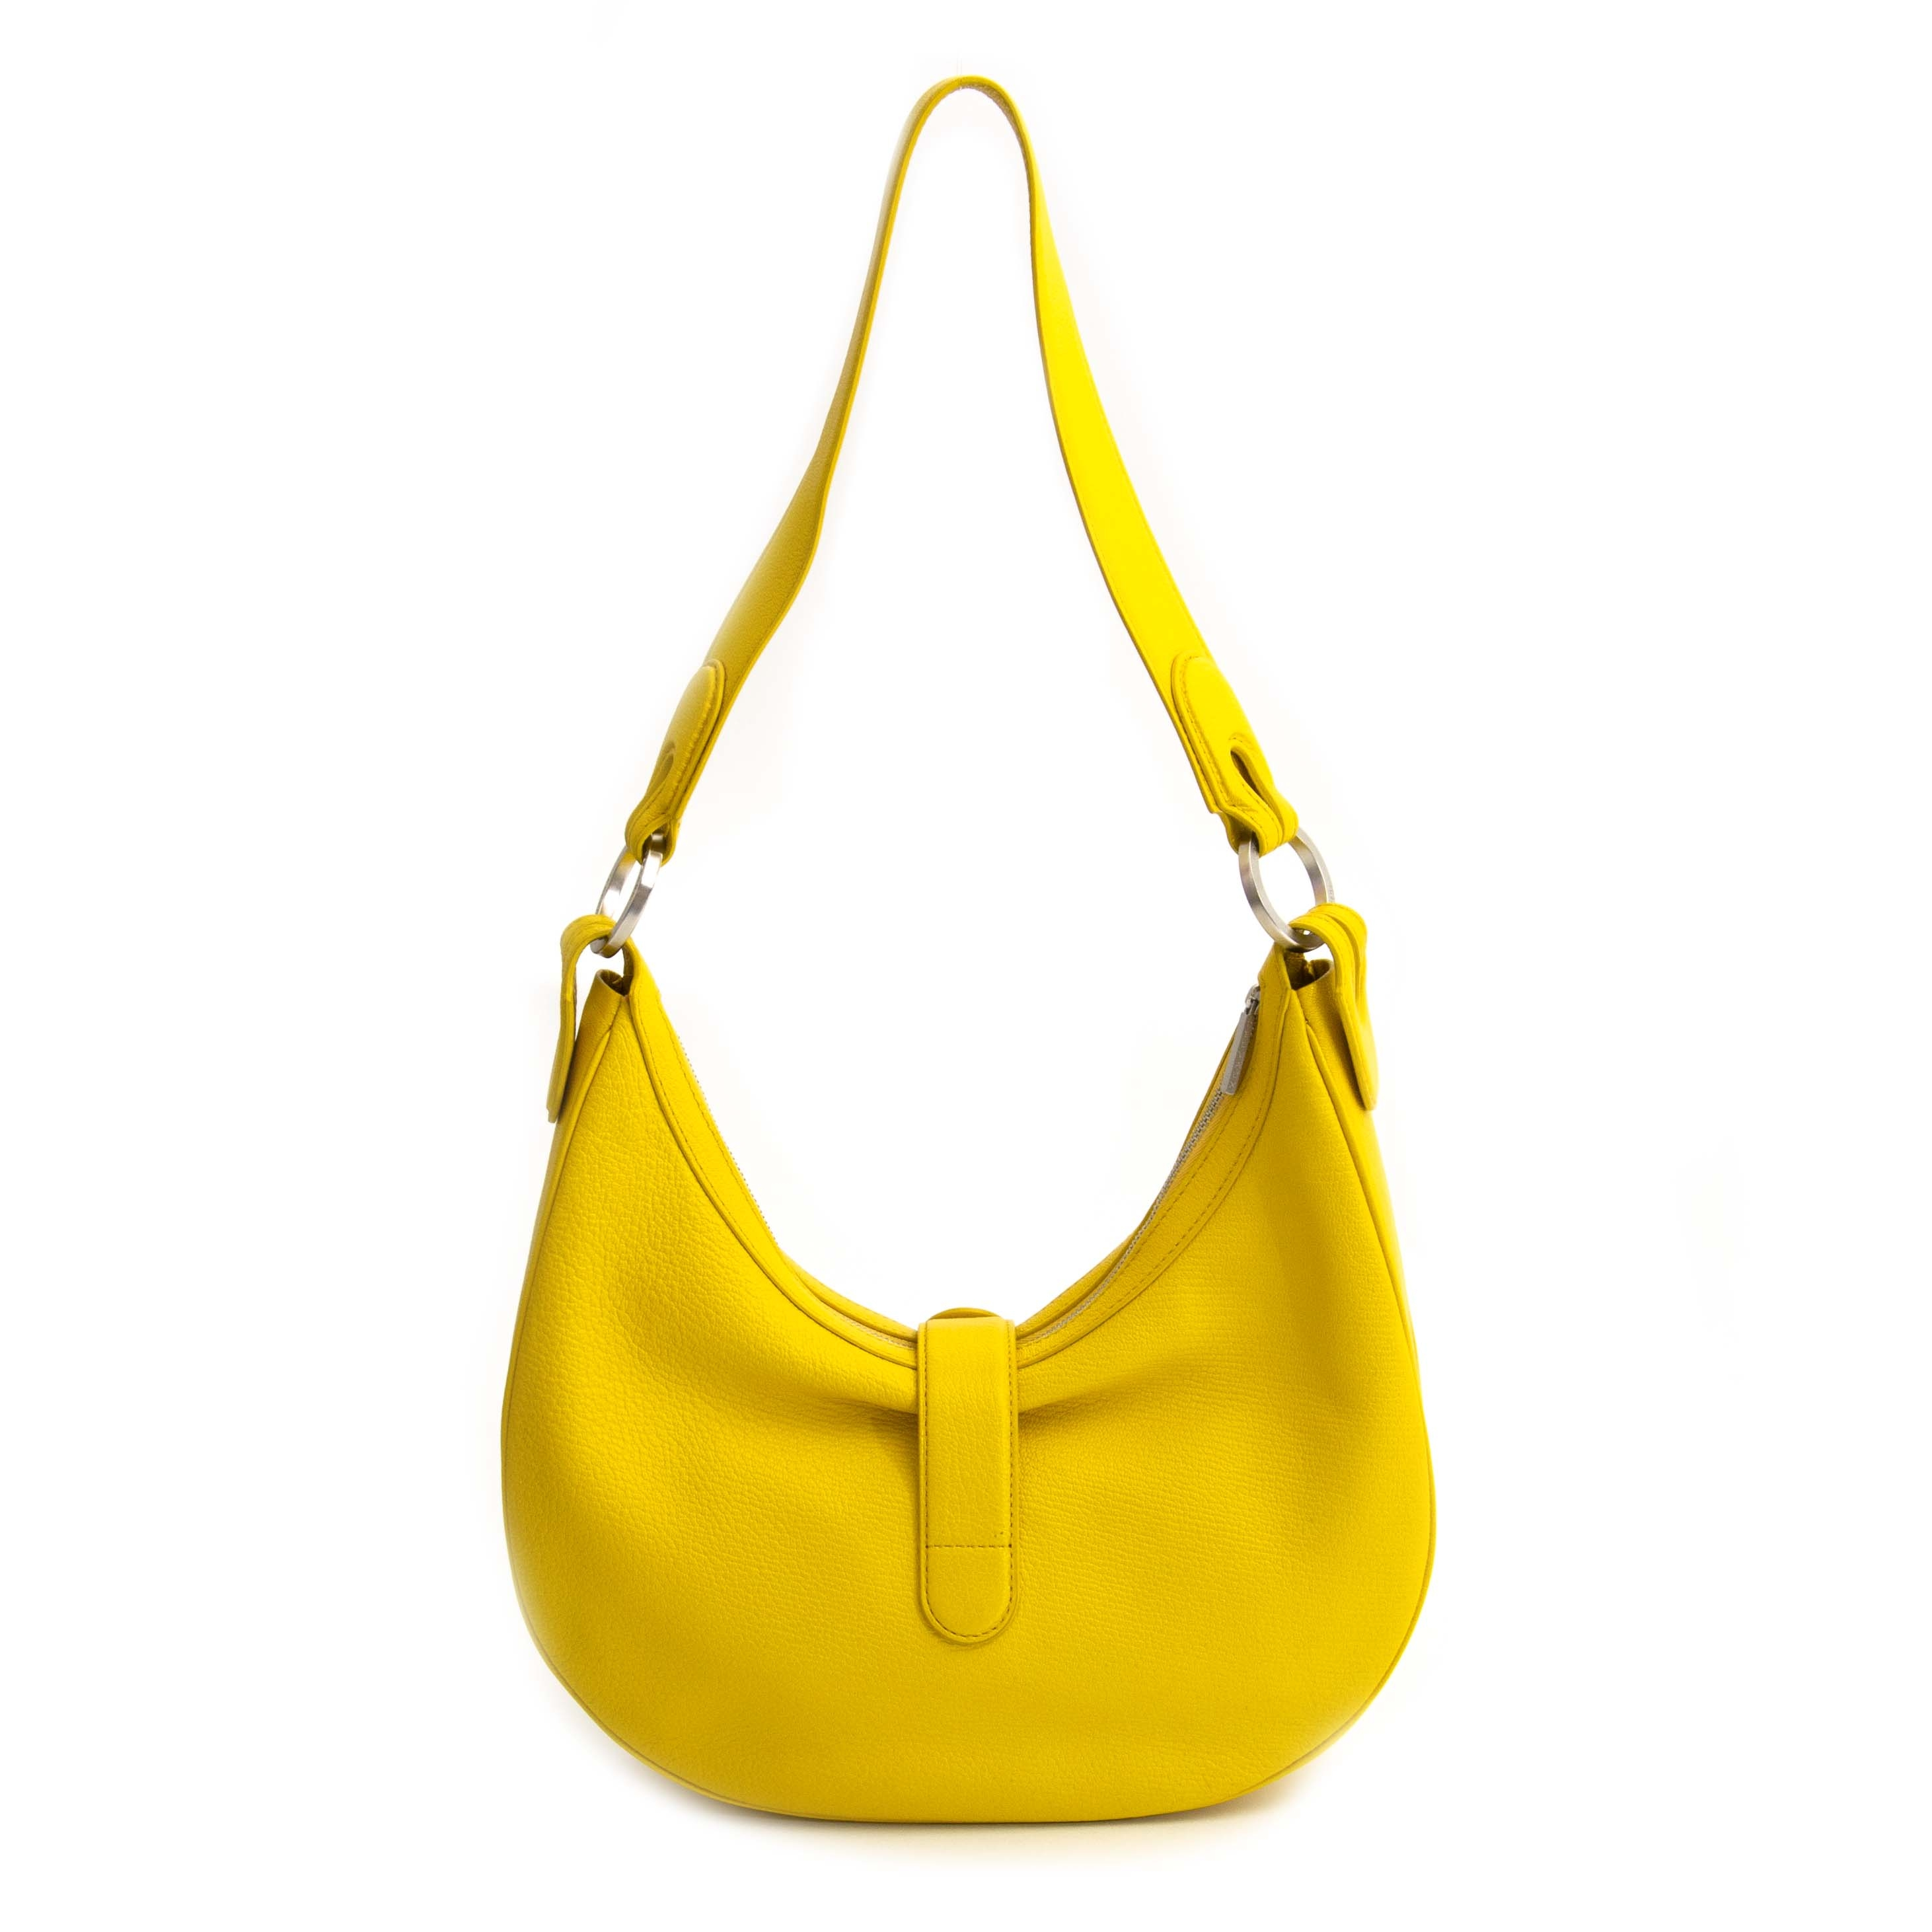 Delvaux Camille PM Chèvre Glacée Souple Yellow for the best price at Labellov